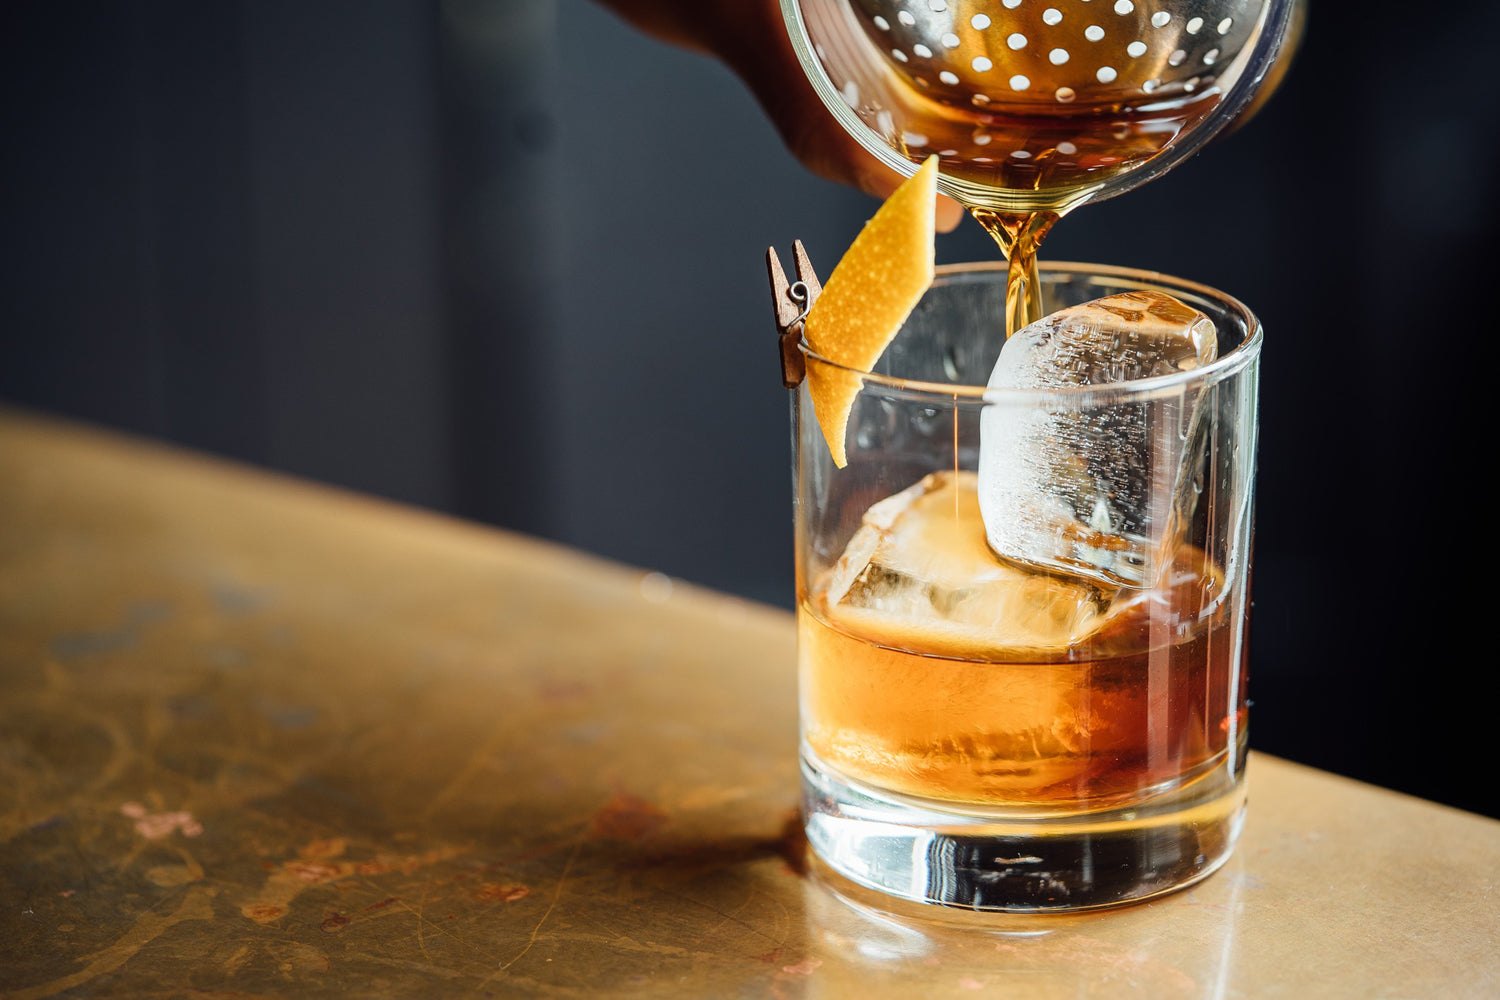 Whisky being poured into a glass